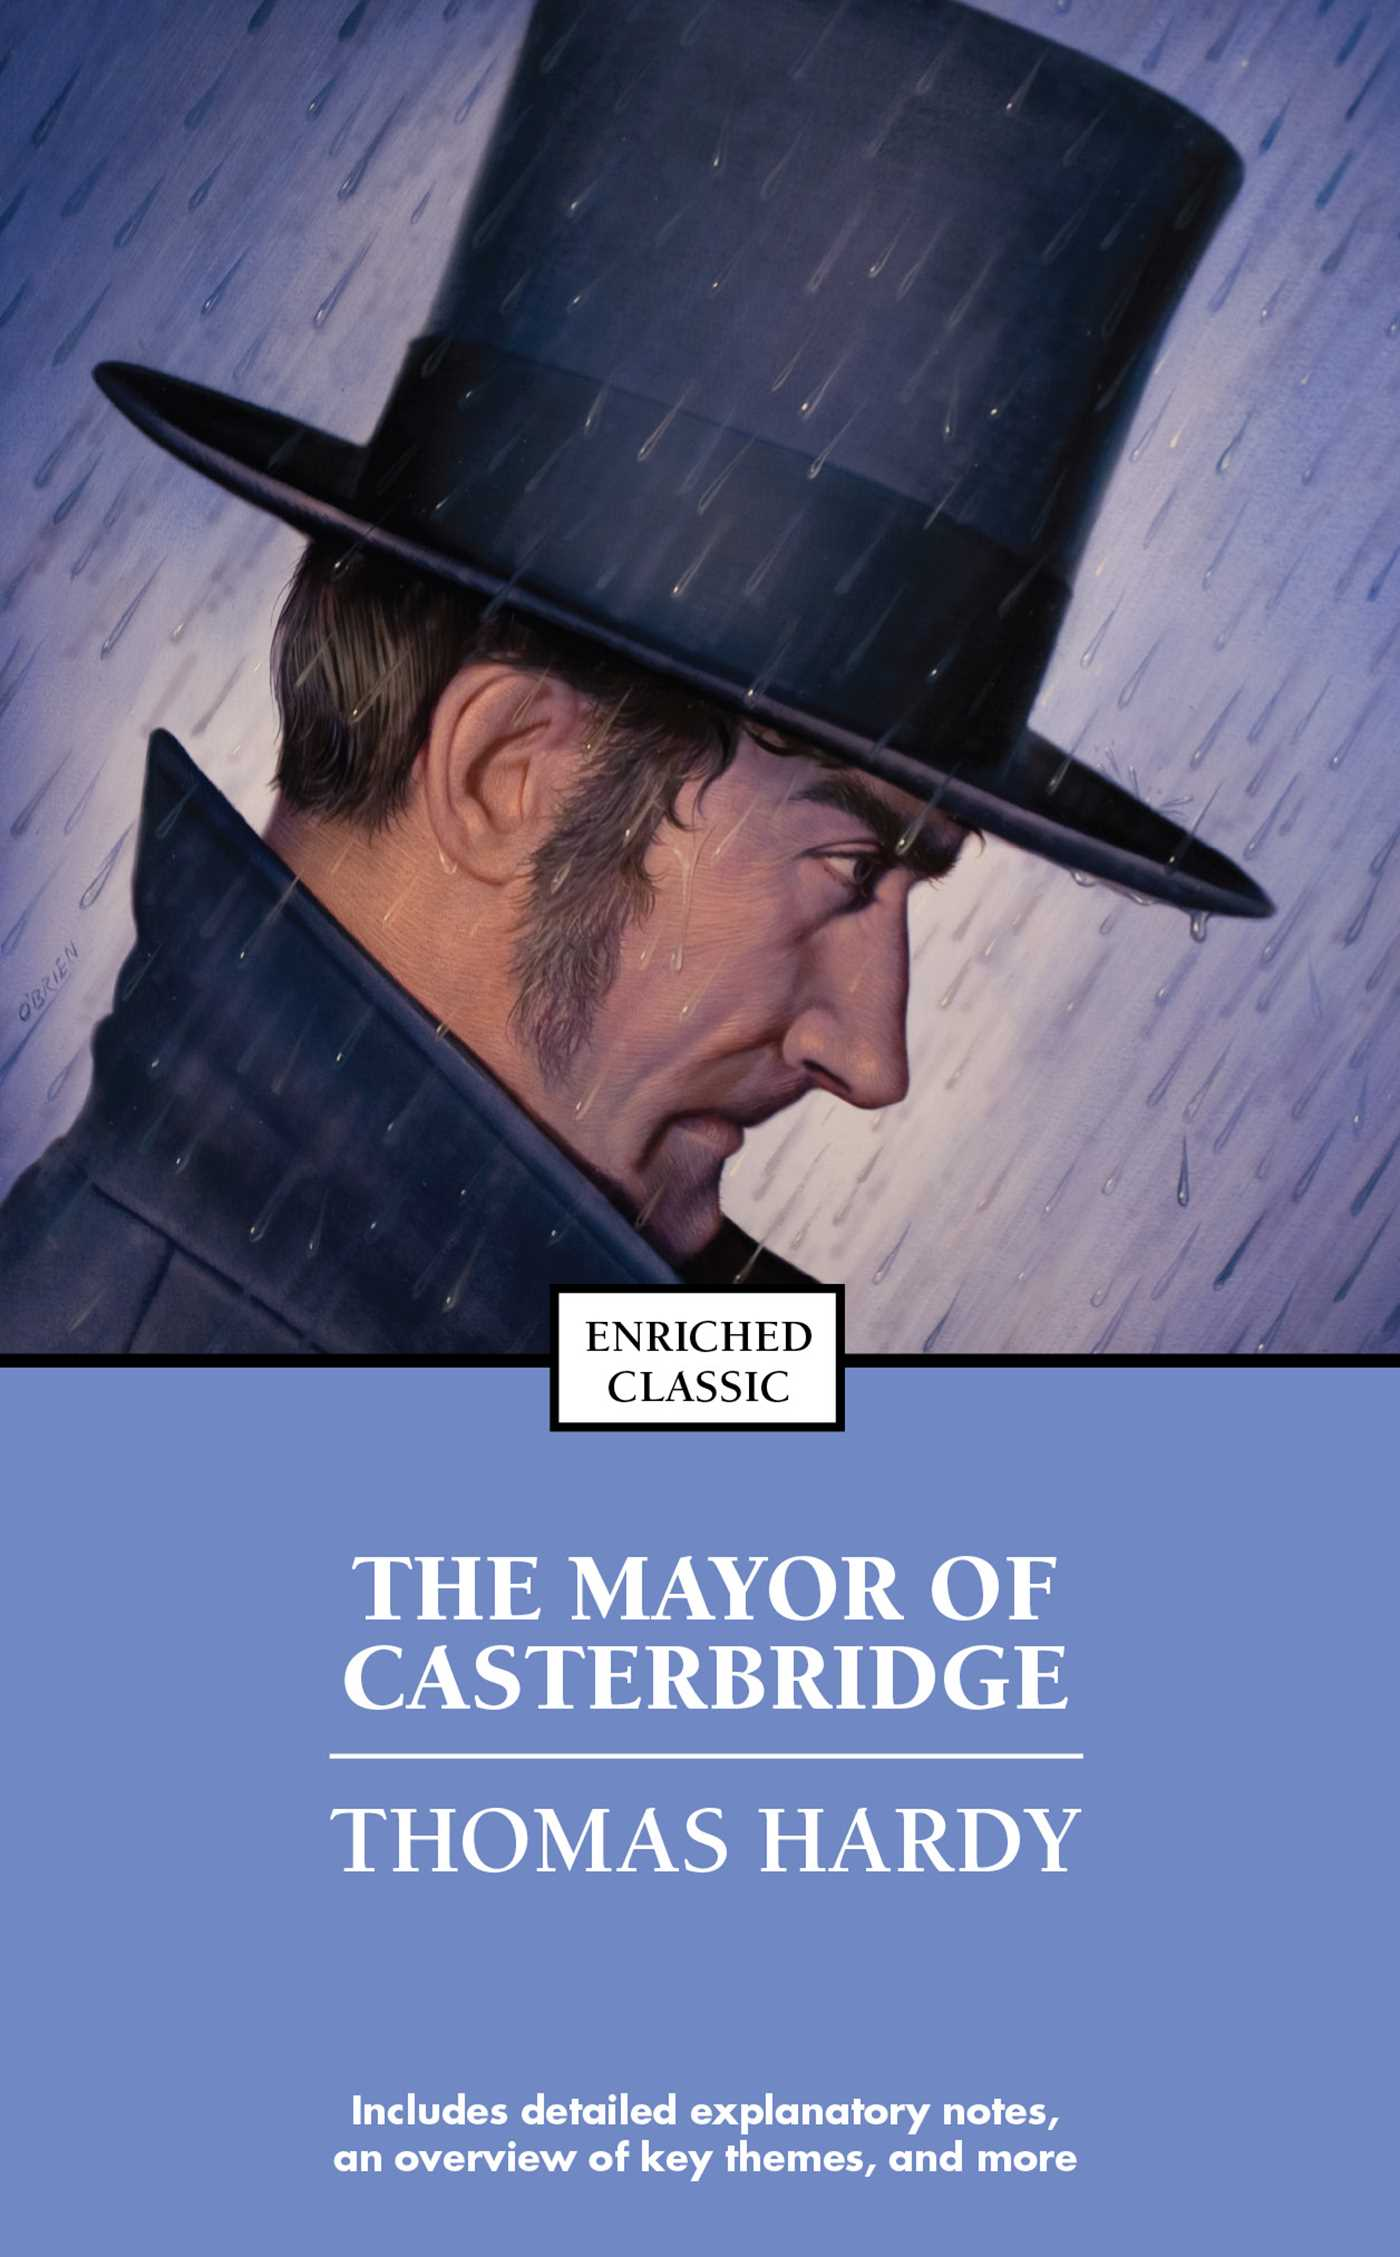 the tragic flaw of michael henchard in mayor of casterbridge Michael henchard in the mayor of casterbridge by thomas hardy aristotle described a tragic hero as someone who has a fatal flaw that bring about.